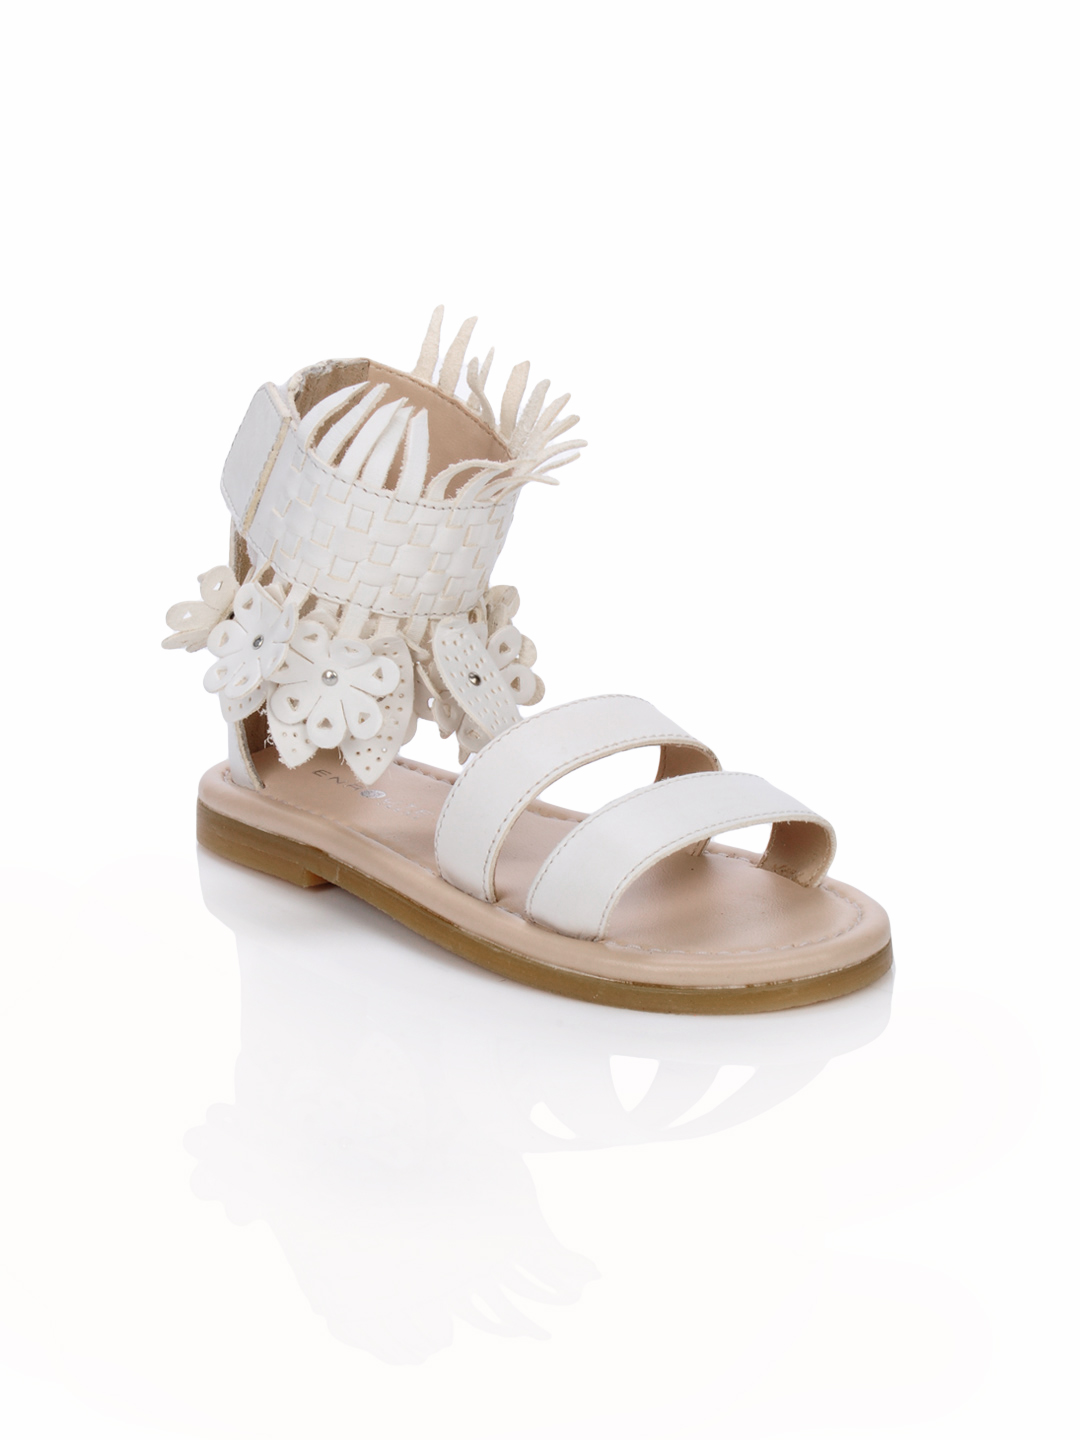 Enroute Teens White Sandals